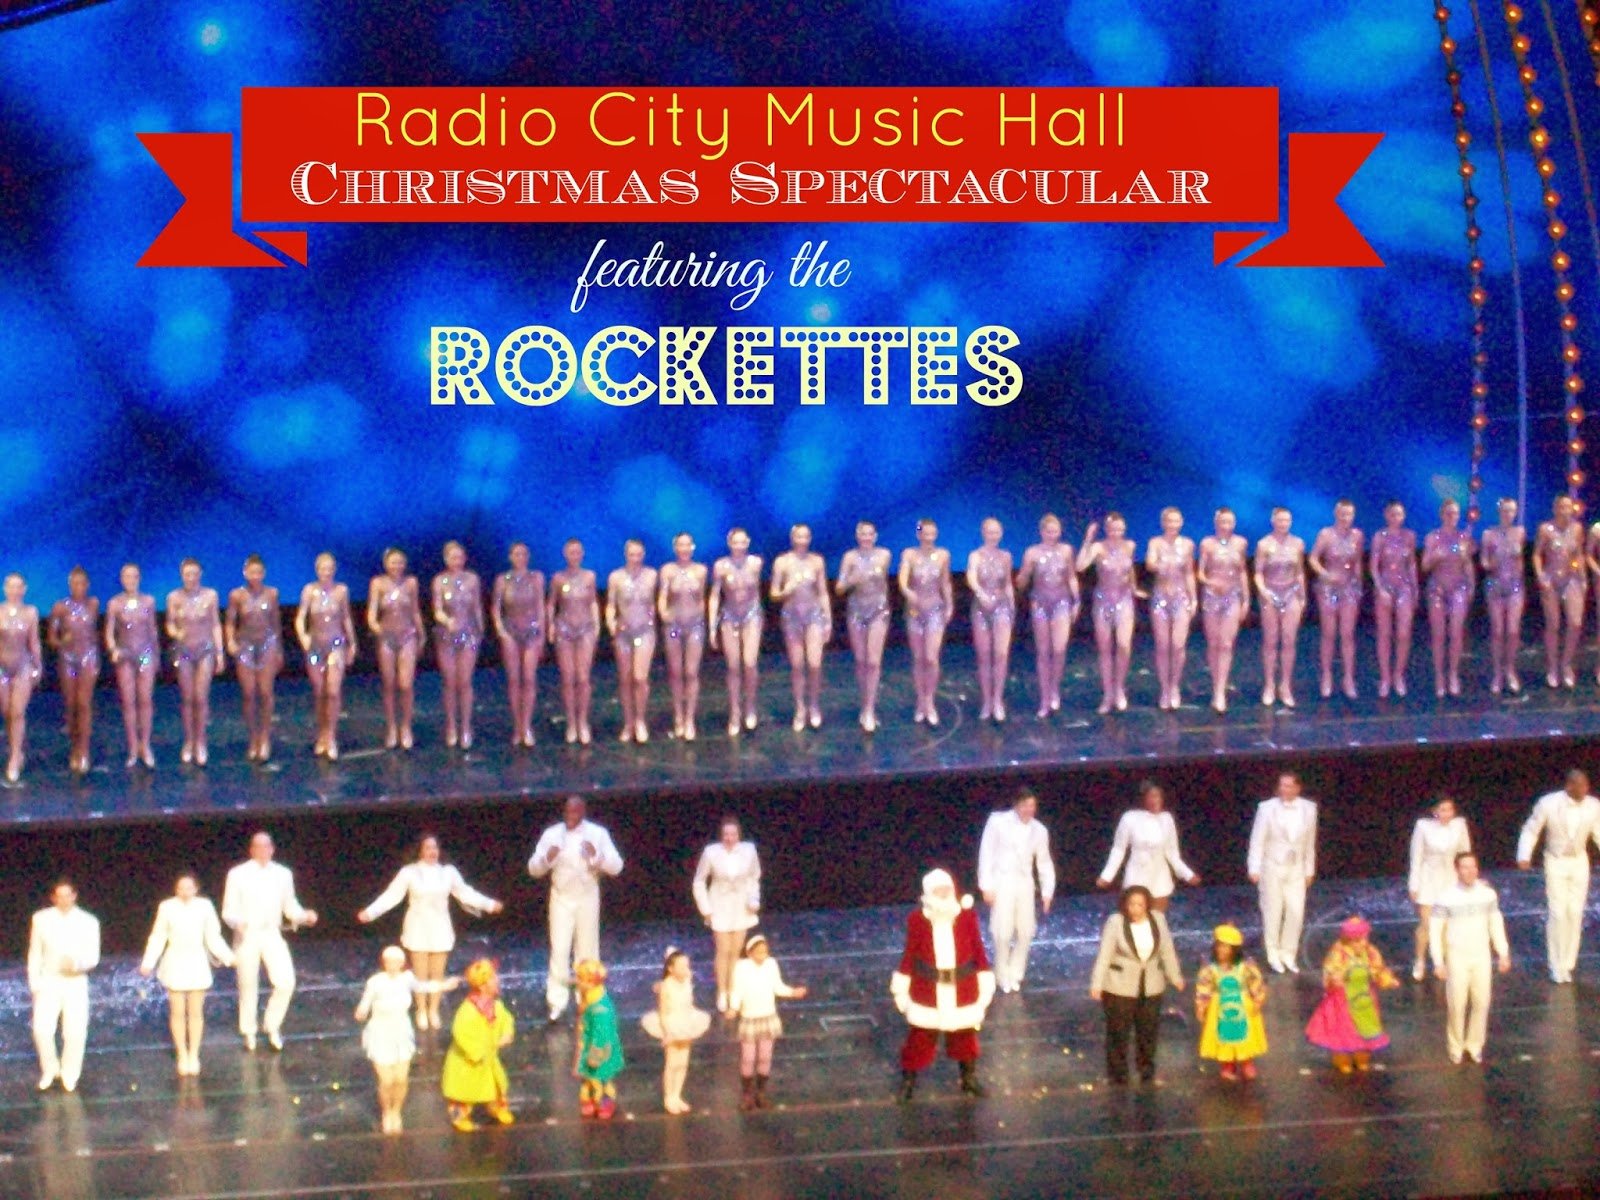 radio city music hall christmas spectacular the rockettes - Rockettes Christmas Show